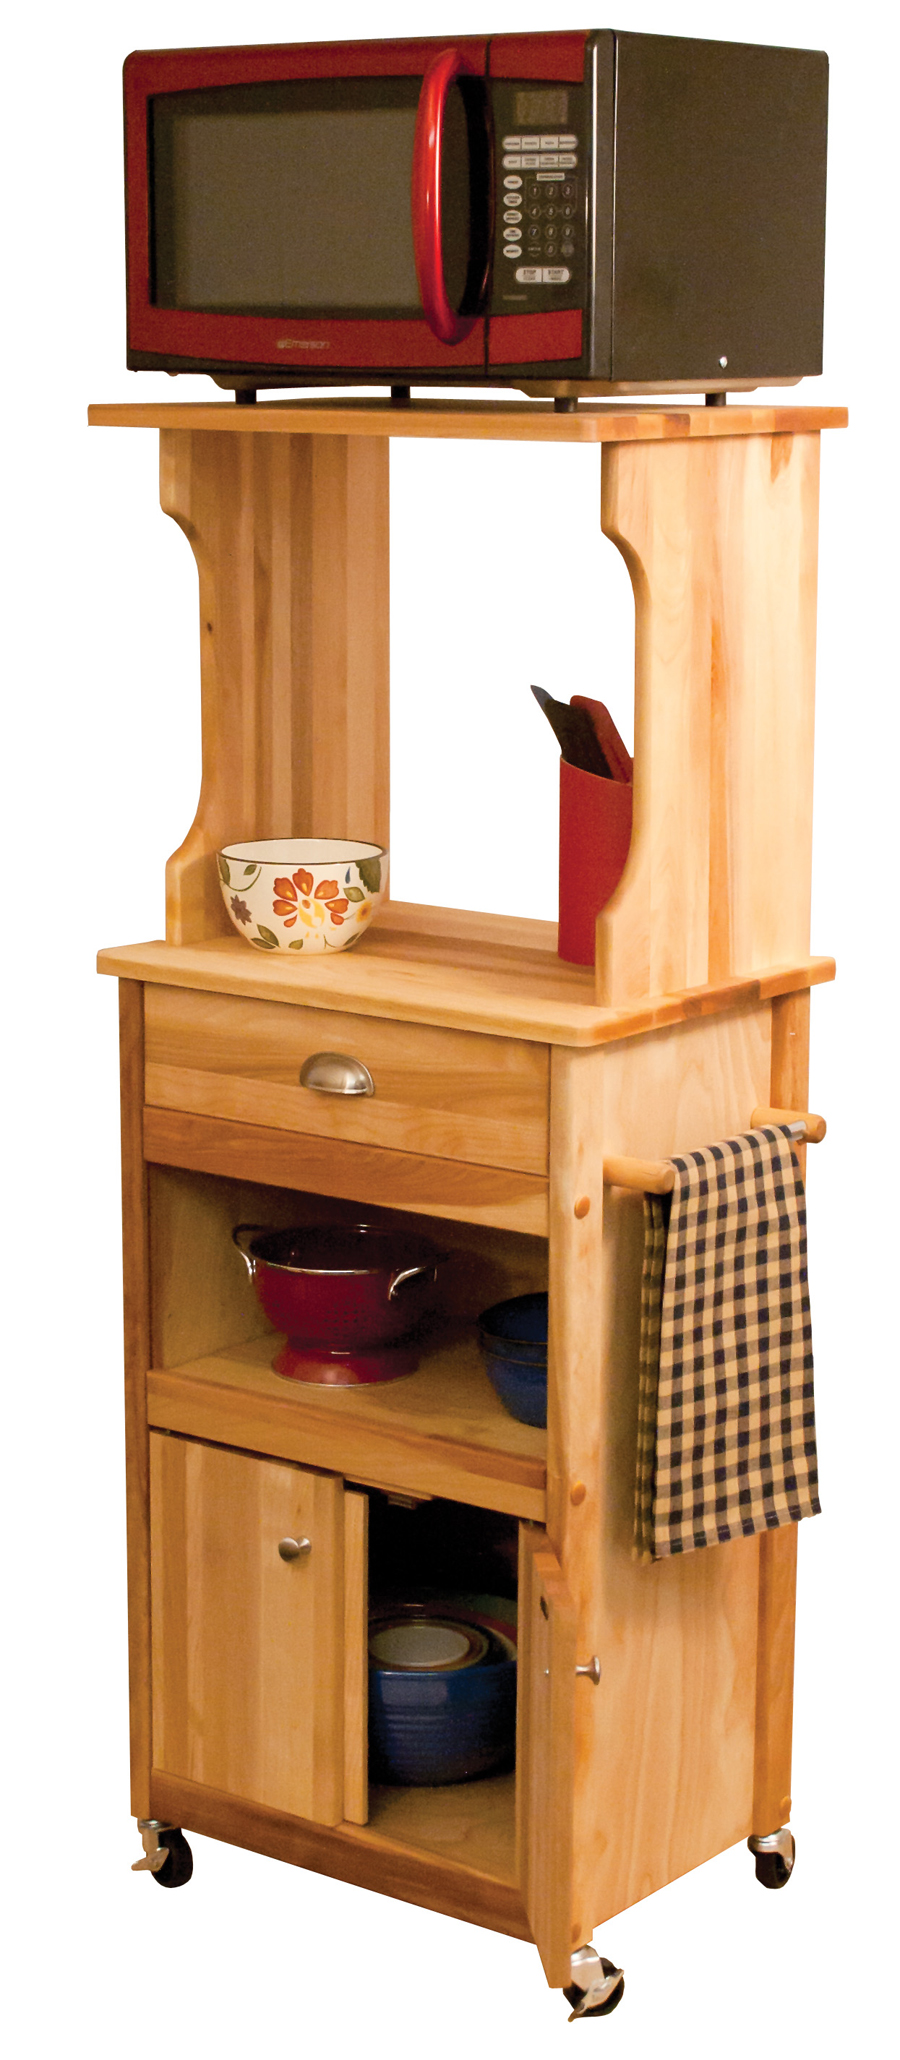 catskill cart for microwave oven, with hutch, butcher block, open shelf, drawer, cabinet storage